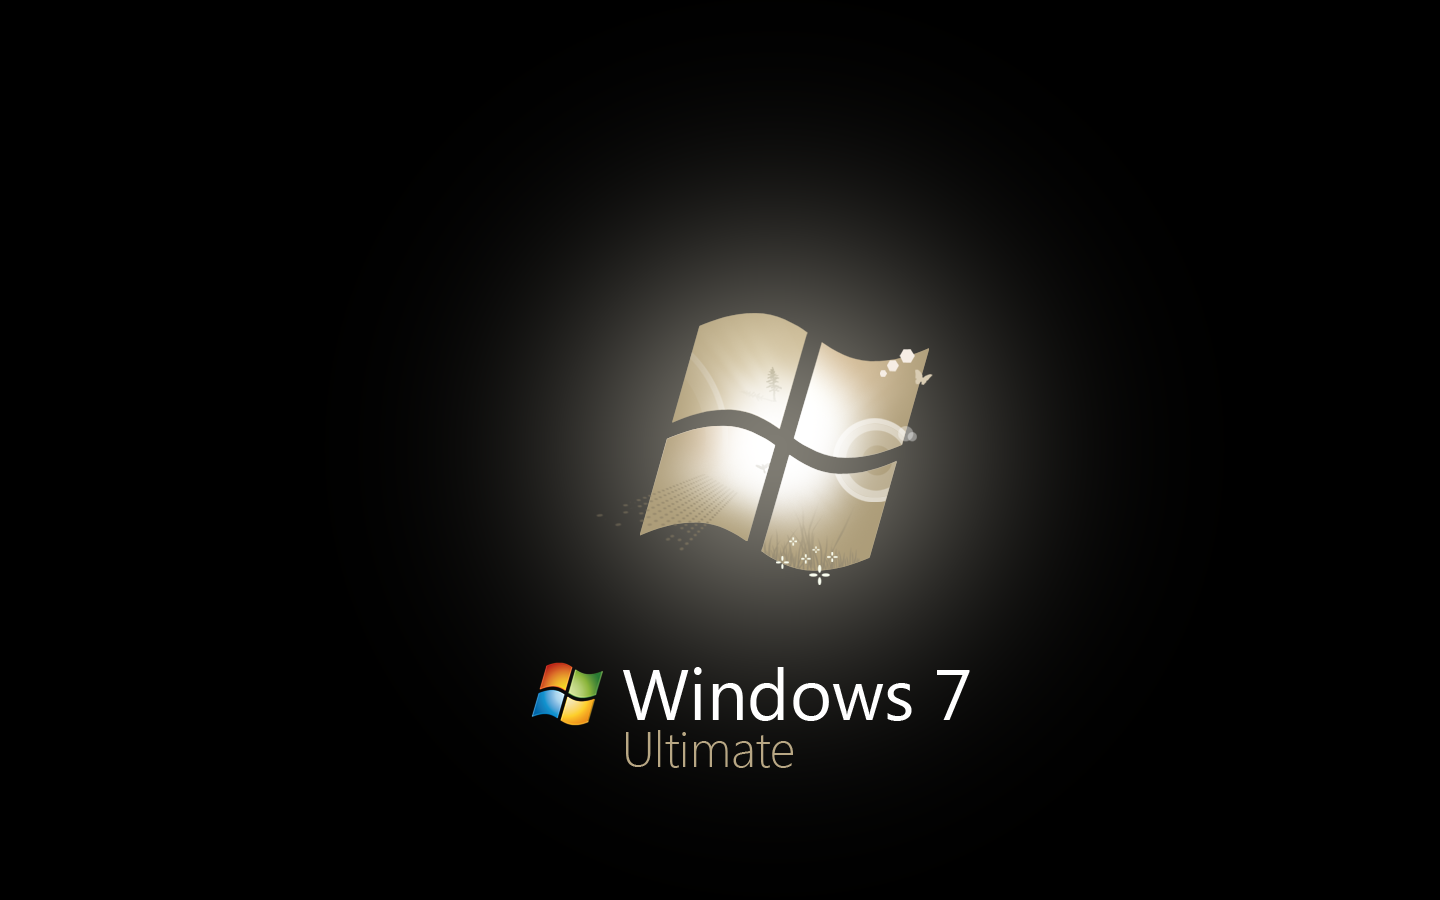 Theme Windows 7 Wallpaper 1080p For Wallpaper Photo On Snowman Wallpapers Com Iphone Android Wallpape In 2020 Windows 7 Themes Wallpaper Pictures Snowman Wallpaper